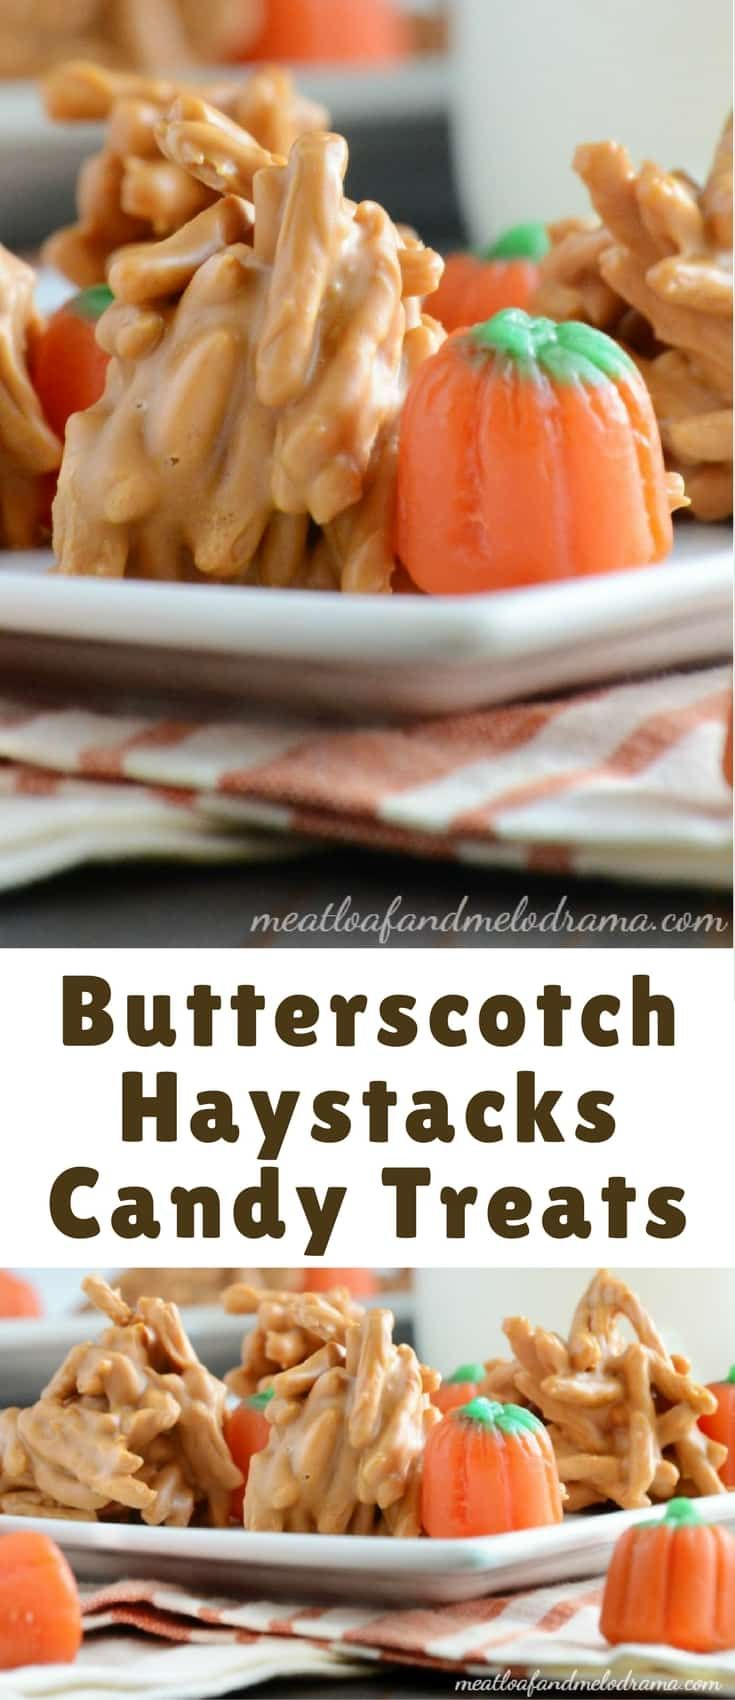 Butterscotch Haystacks Candy Treats made with chow mein noodles, butterscotch morsels and peanut butter are super easy to make and perfect for fall!